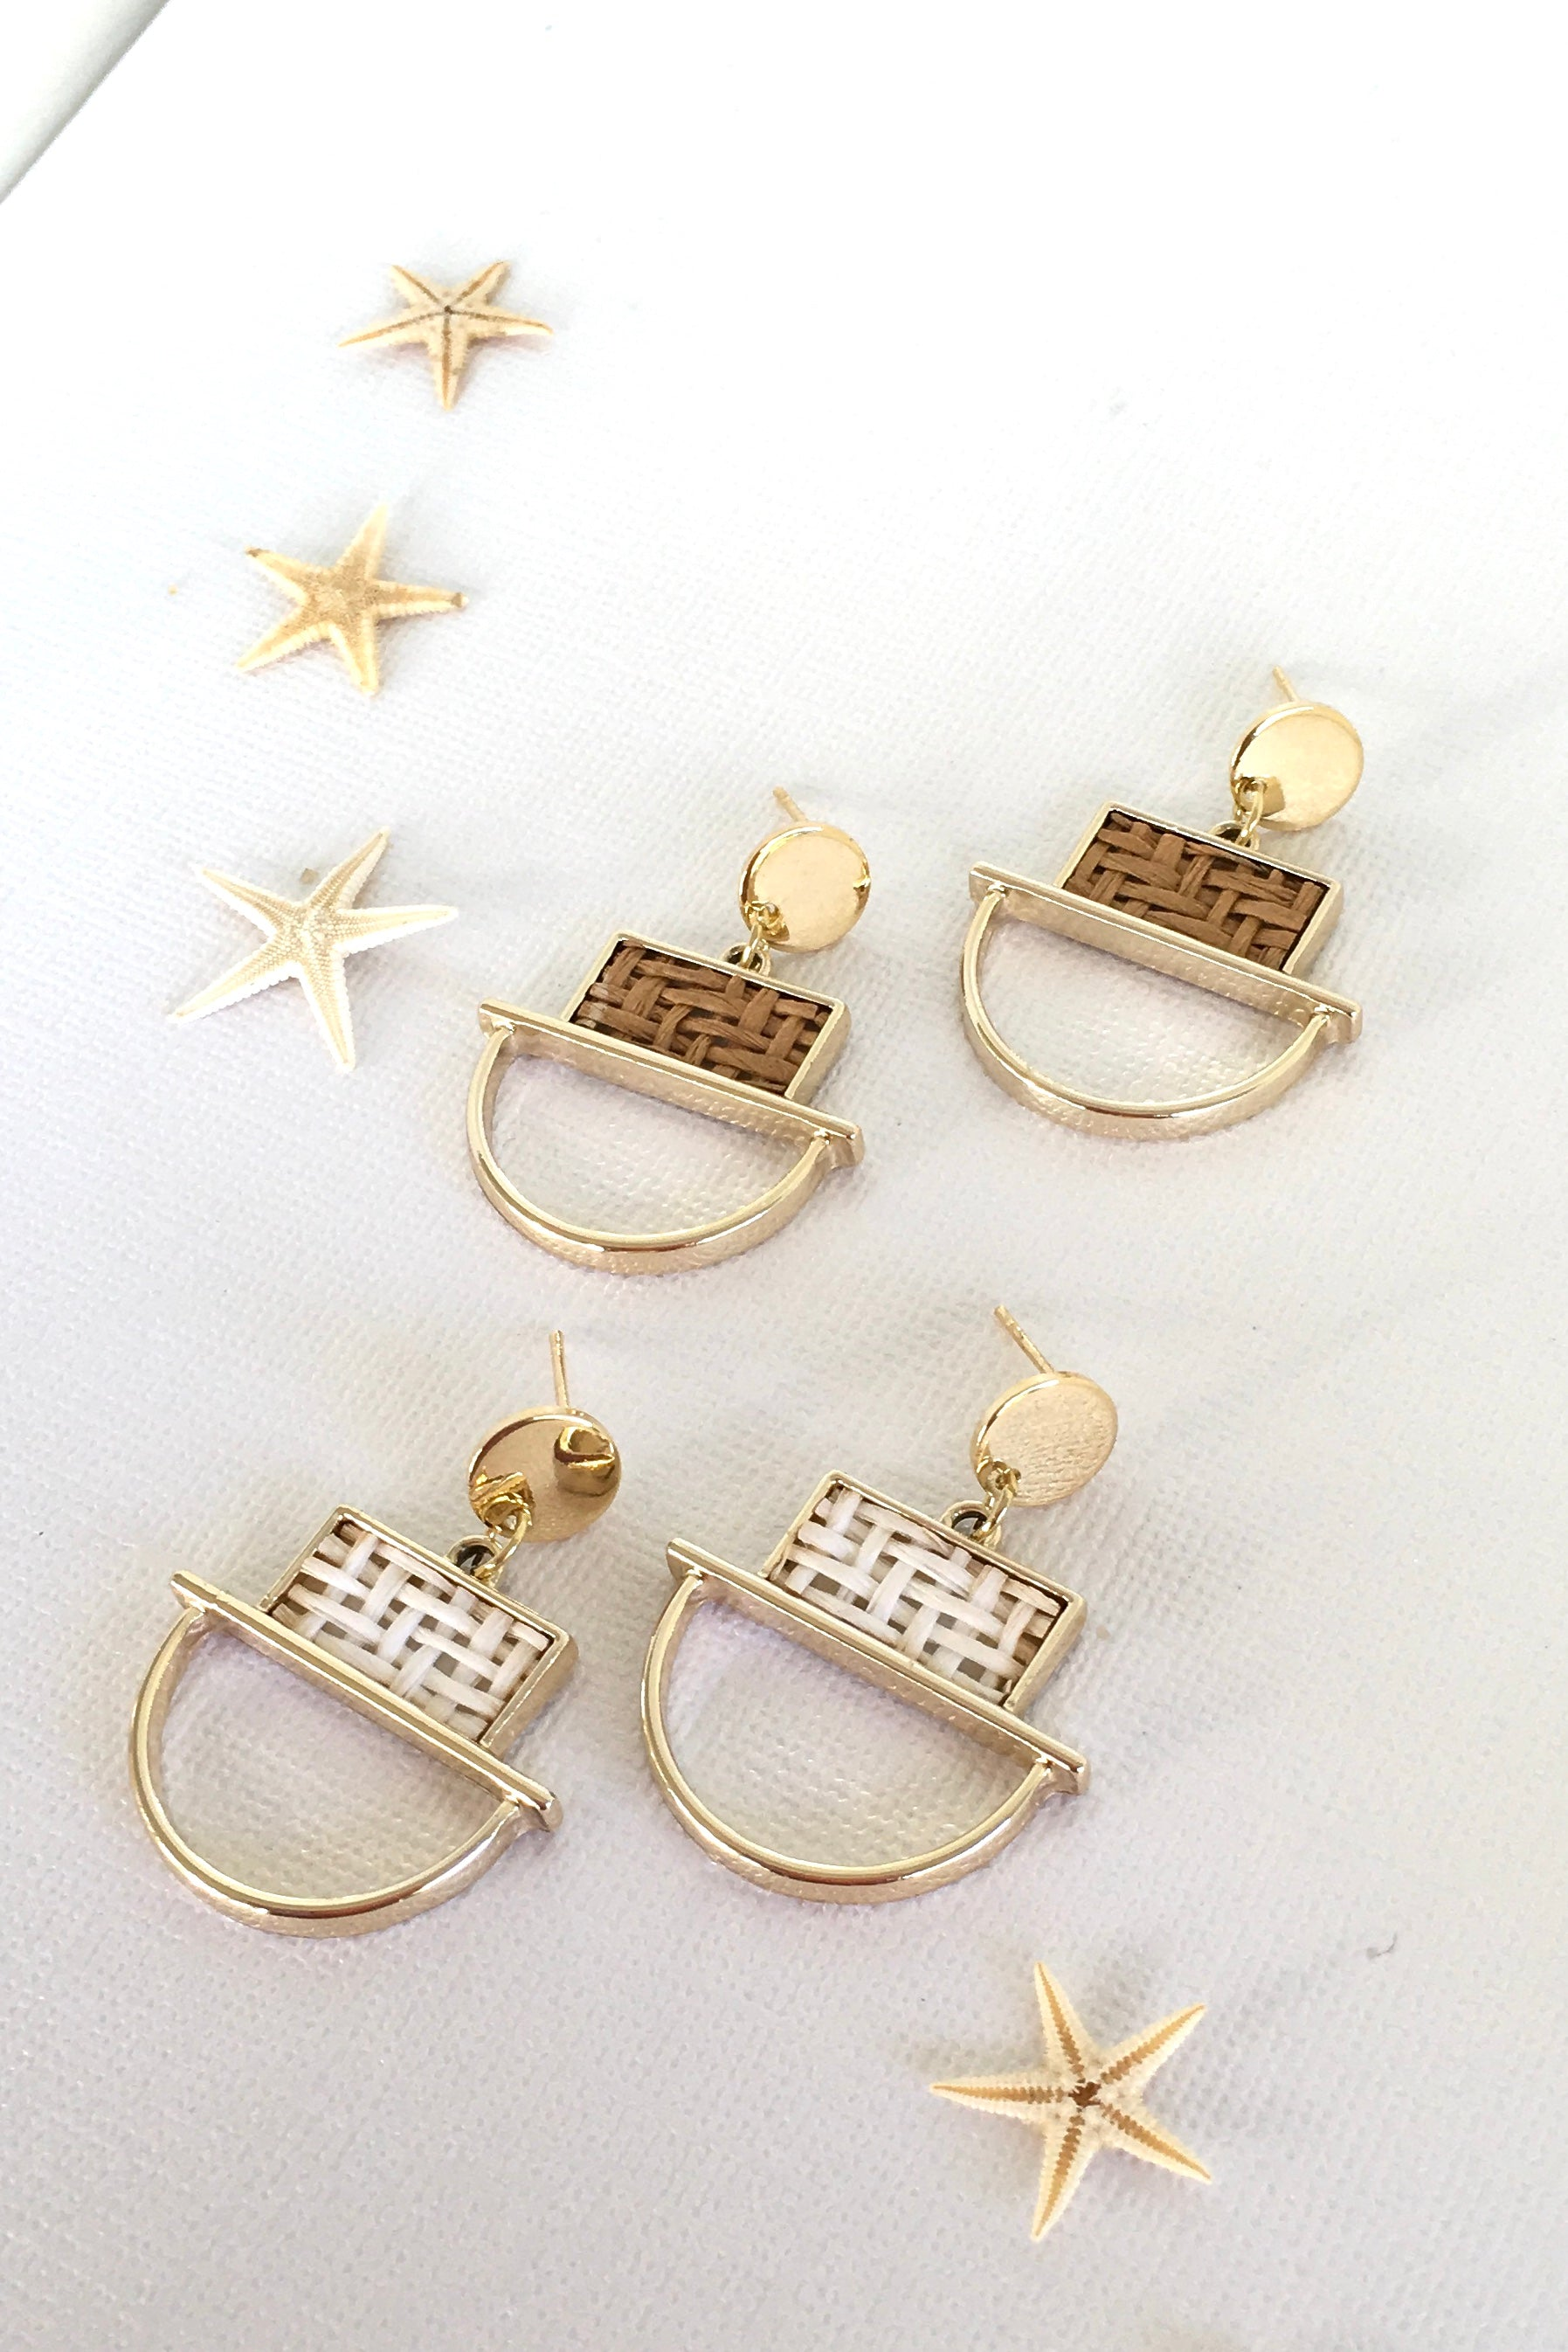 Earring Summer Weave Angles Tan or Cream